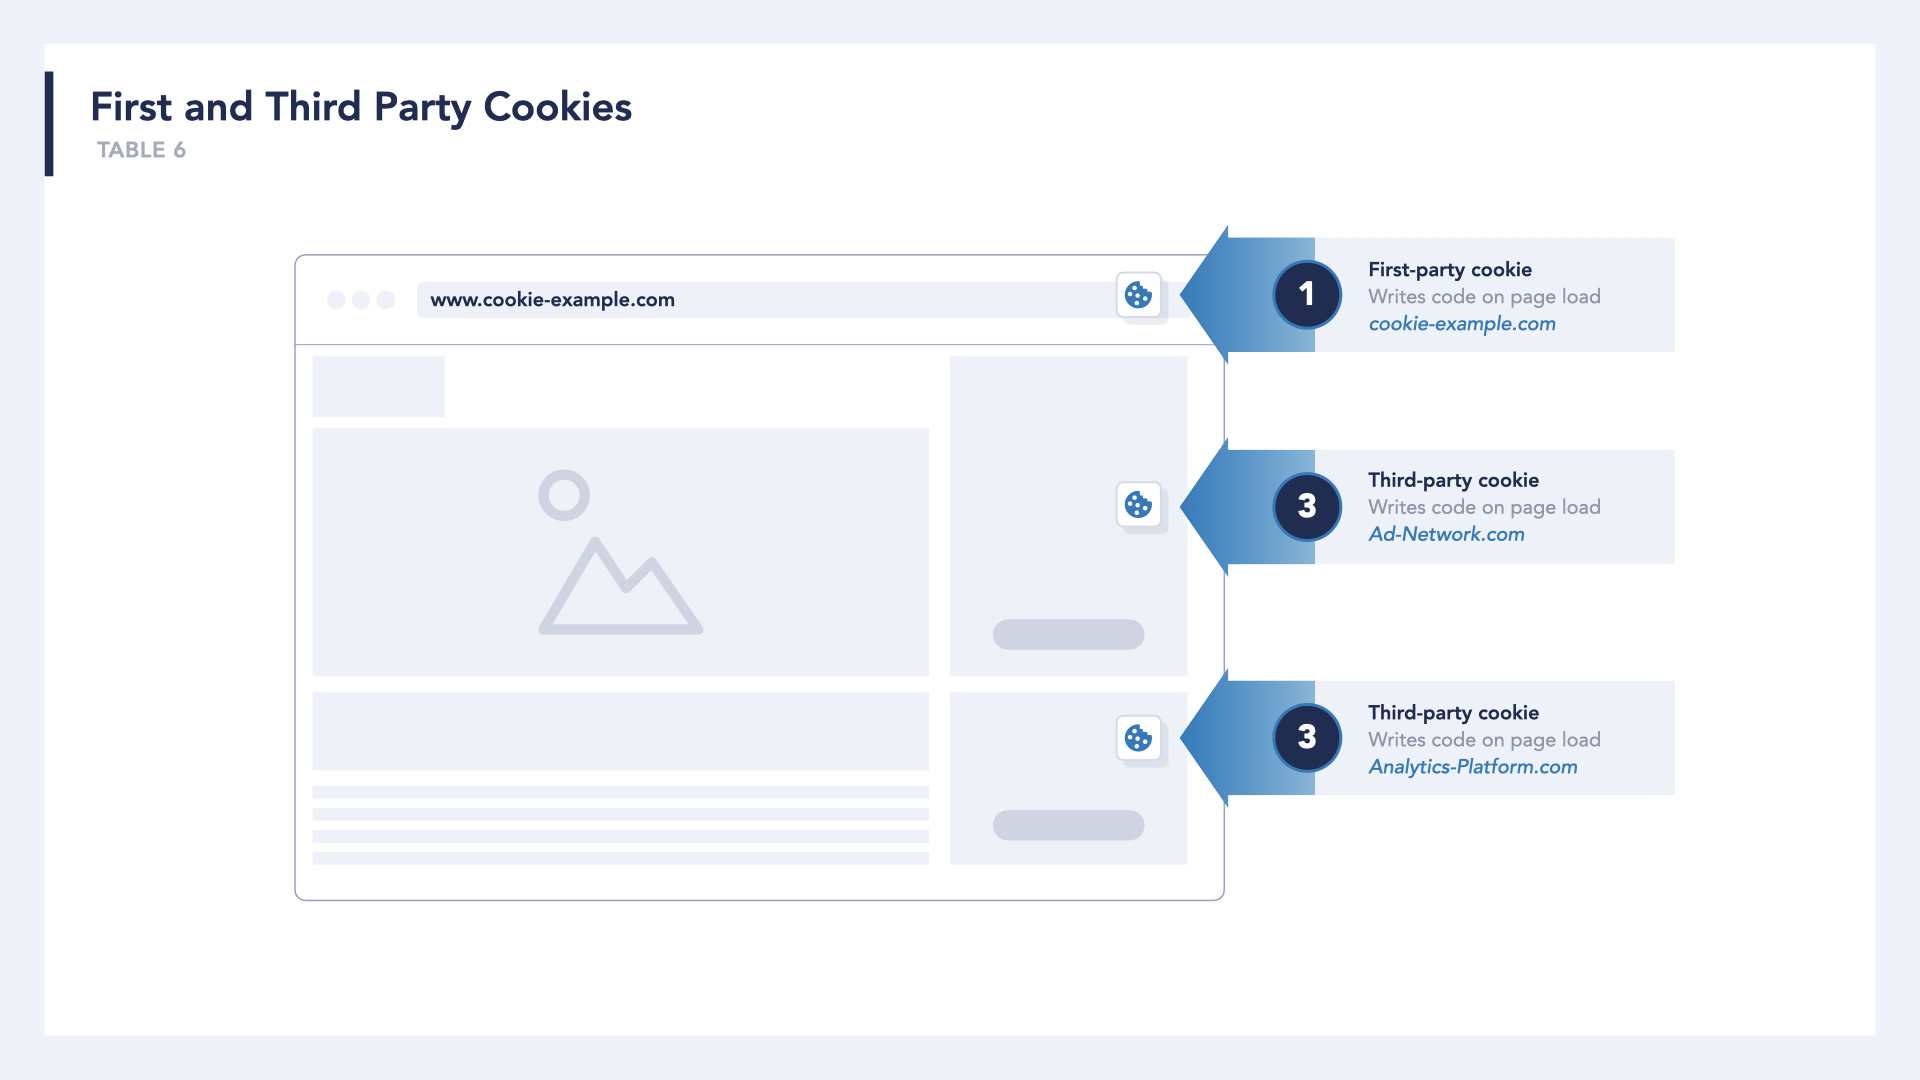 browser mockup, showing a first-party cookie set by the current URL with an arrow pointing to URL address bar; showing 2 third-party cookies set by other domains such as [ad-network.com on image load] with an arrow pointing to an image, and [qAnalytics.com on page load] pointing at blank page space